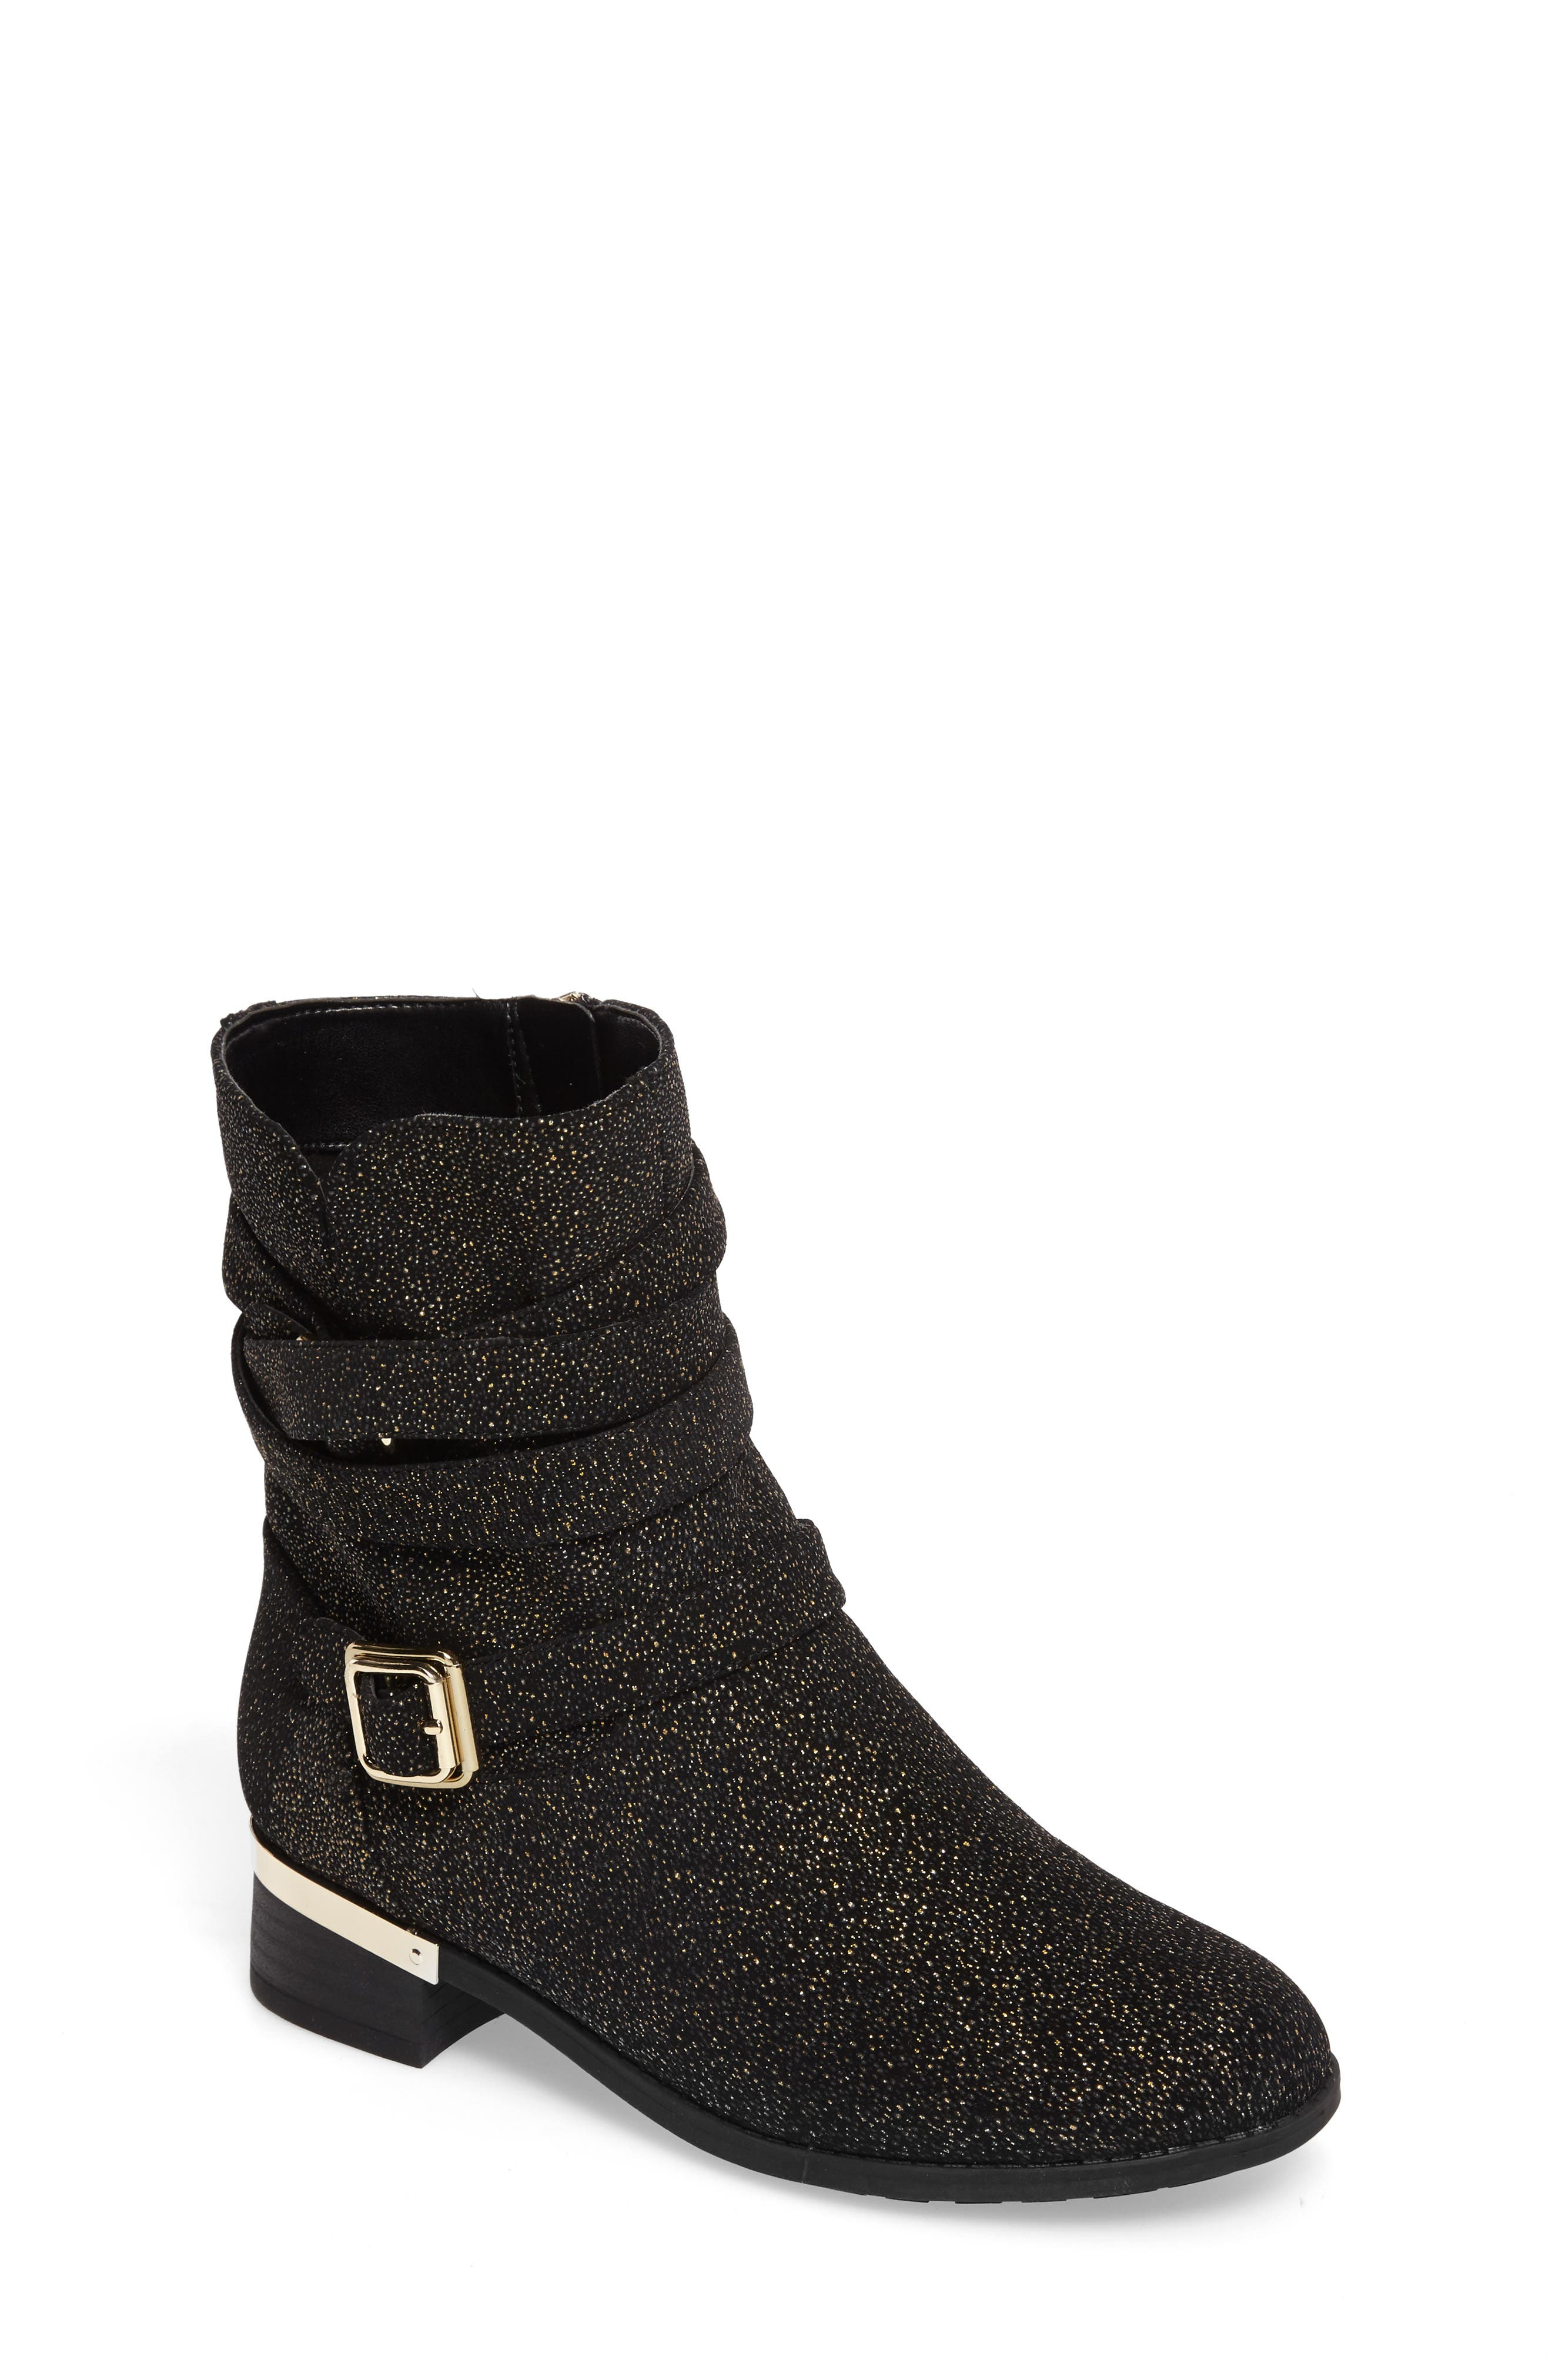 Main Image - Vince Camuto Webb Buckle Strap Bootie (Toddler, Little Kid & Big Kid)